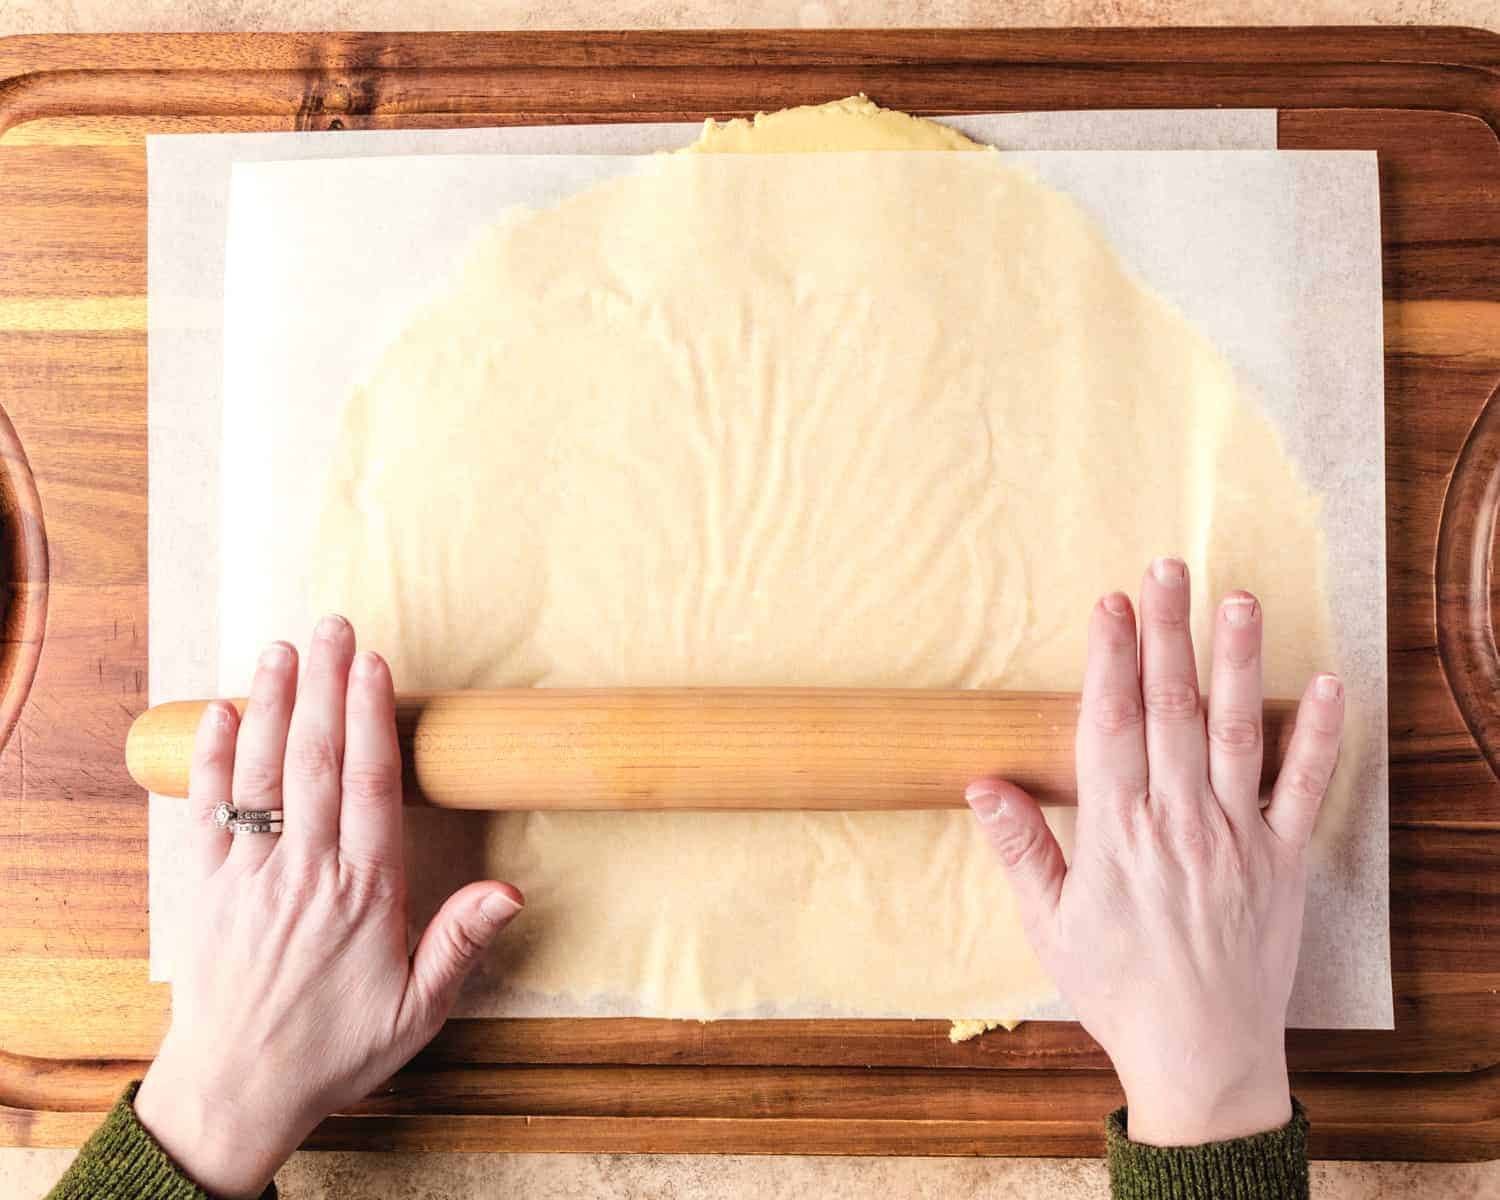 rolling out cookie dough between two sheets of parchment paper